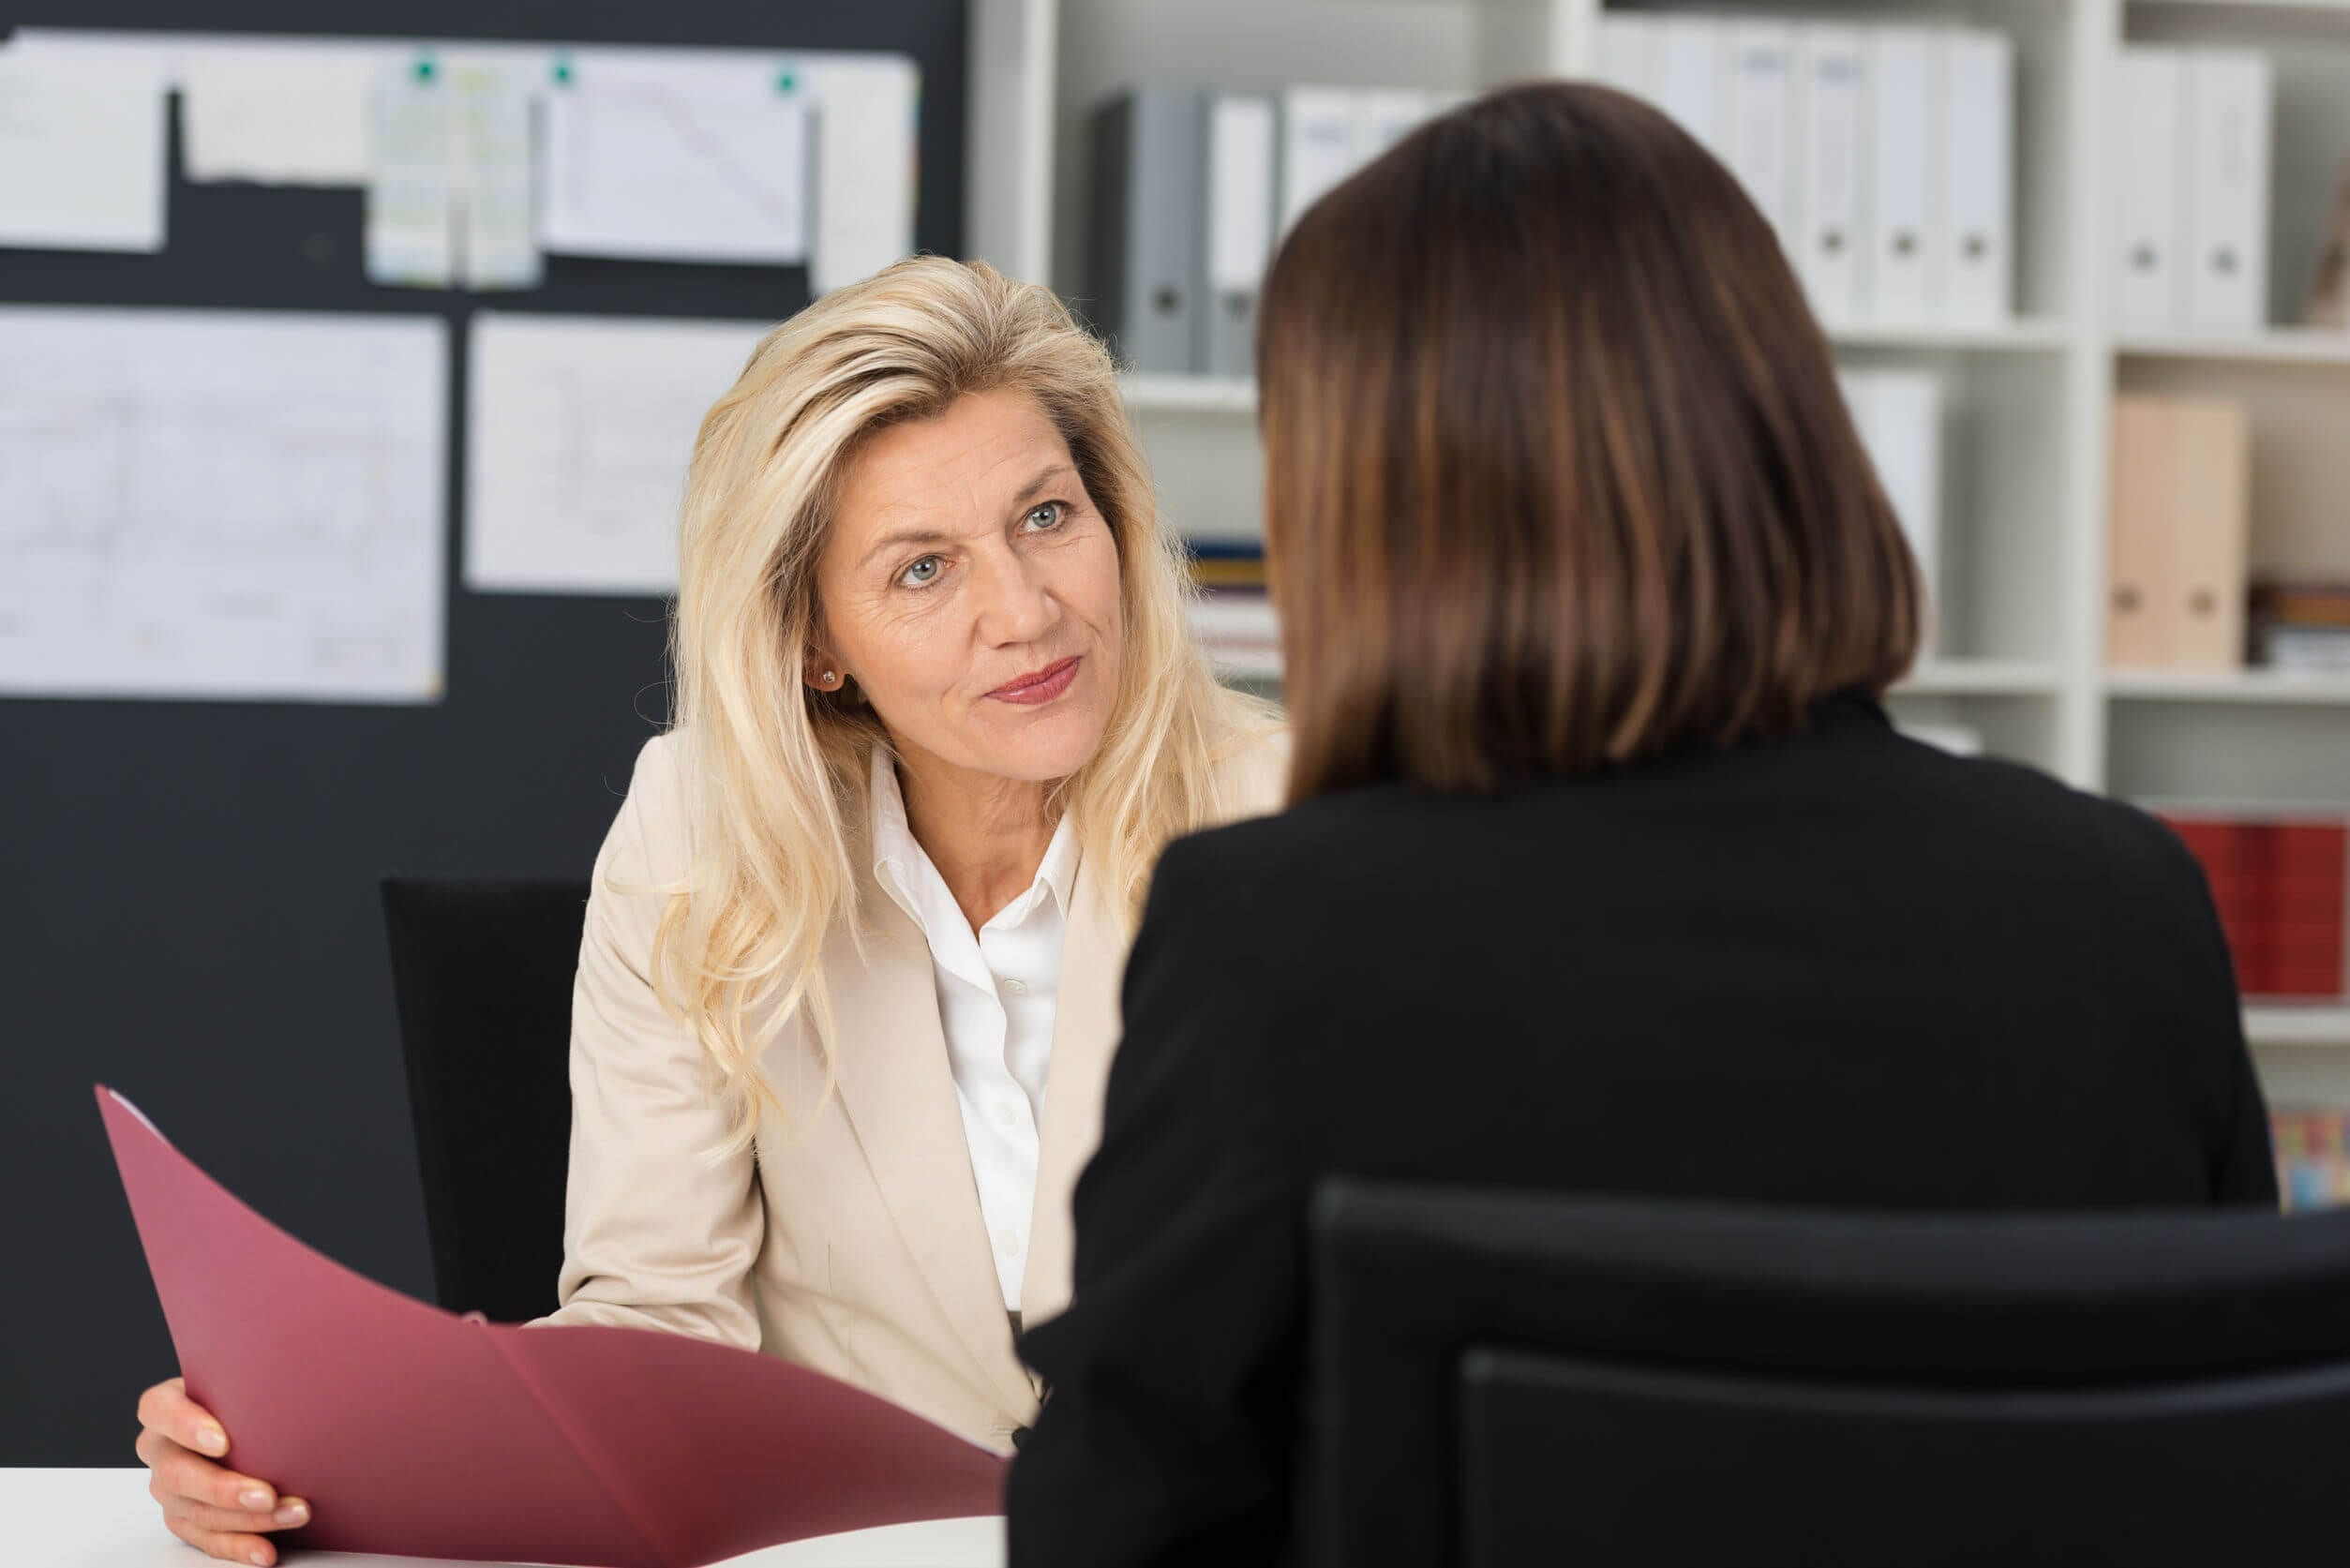 Fort Worth Sexual Harassment Lawyers